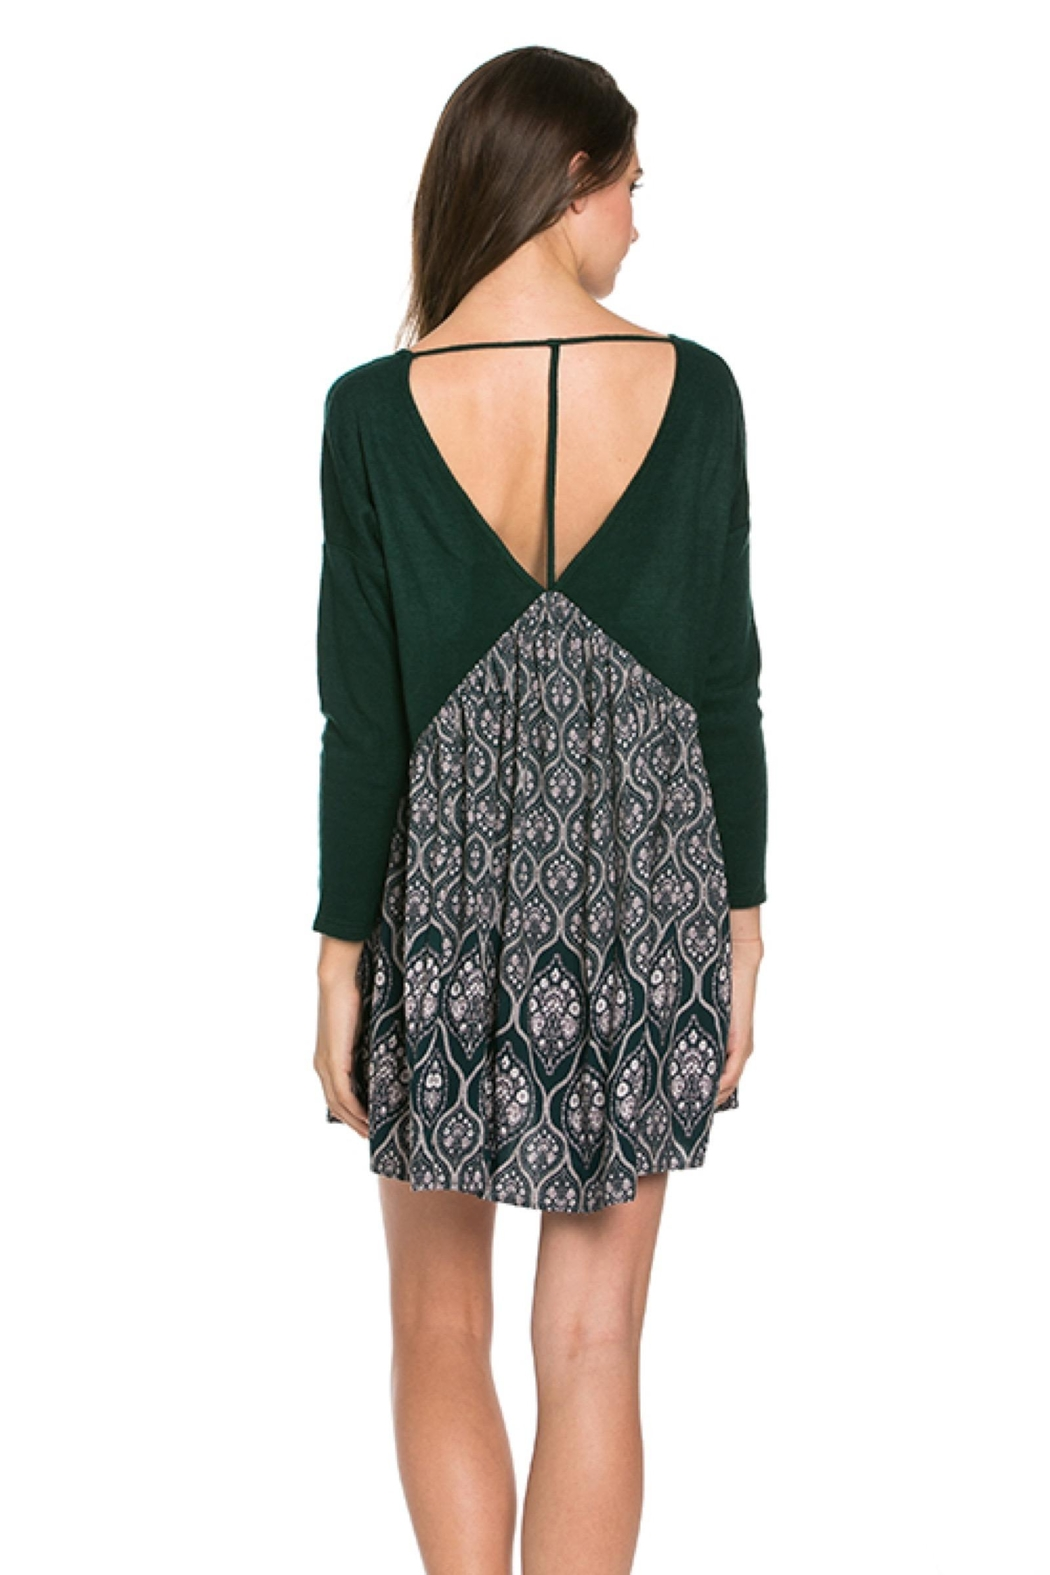 People Outfitter Dark Green Tunic Dress - Front Full Image